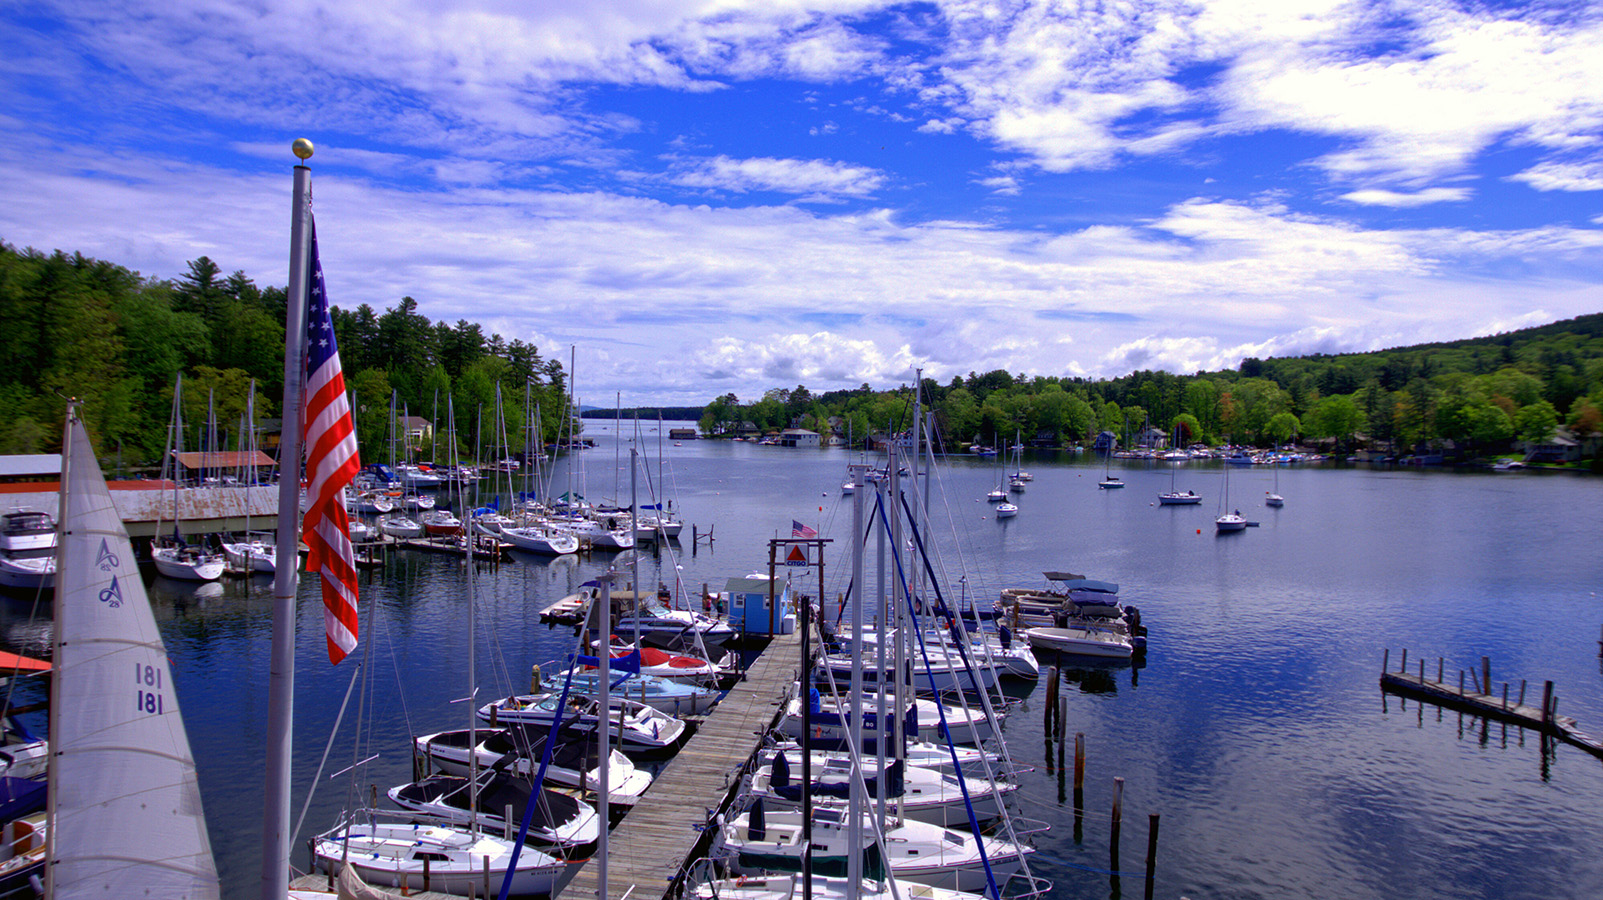 Fay's Boat Yard on Lake Winnipesaukee